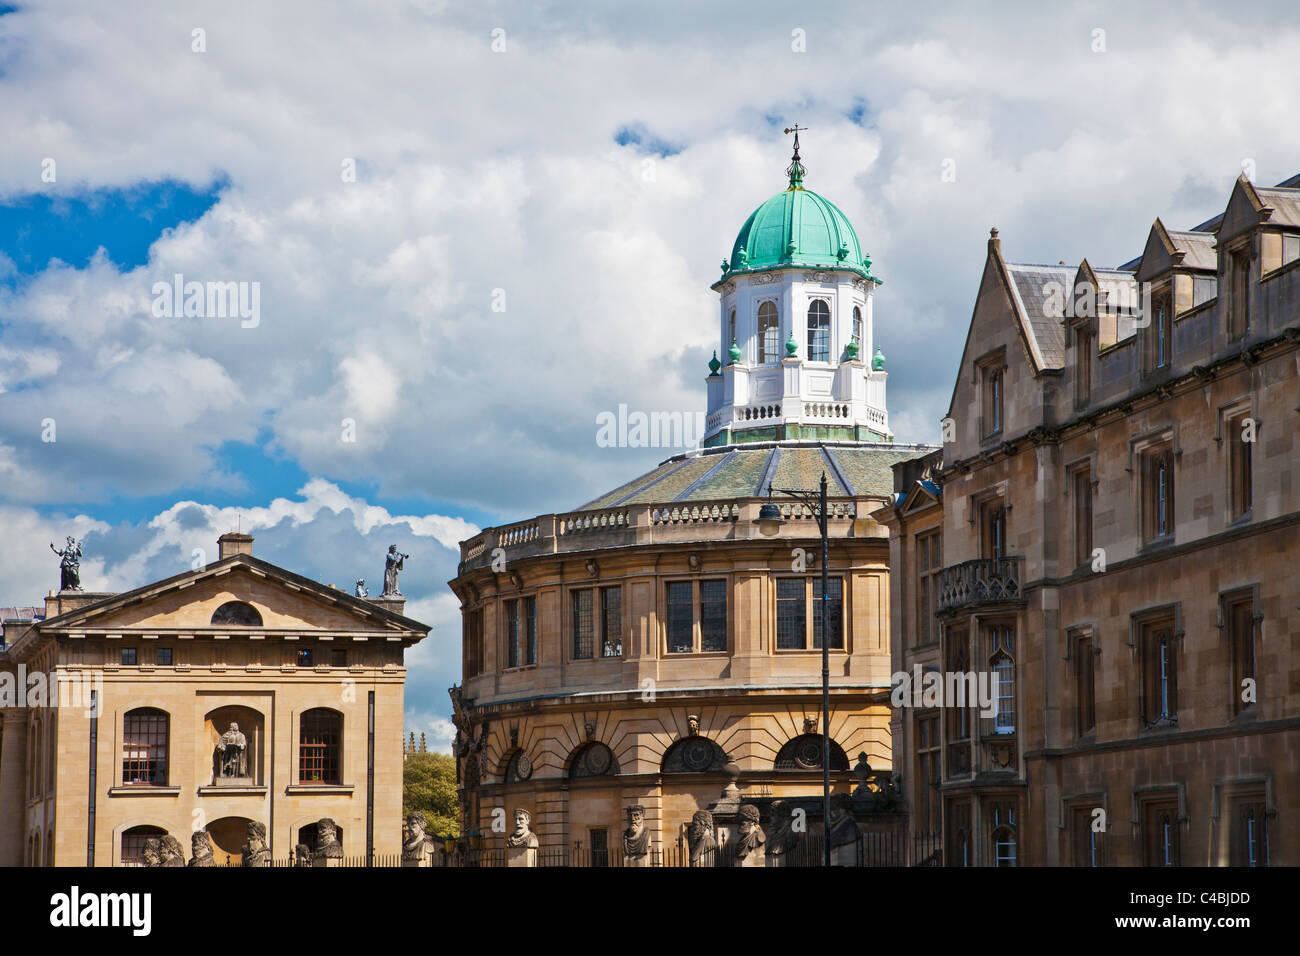 Clarendon Building and Sheldonian Theatre in Broad Street or The Broad, Oxford, England, UK Stock Photo